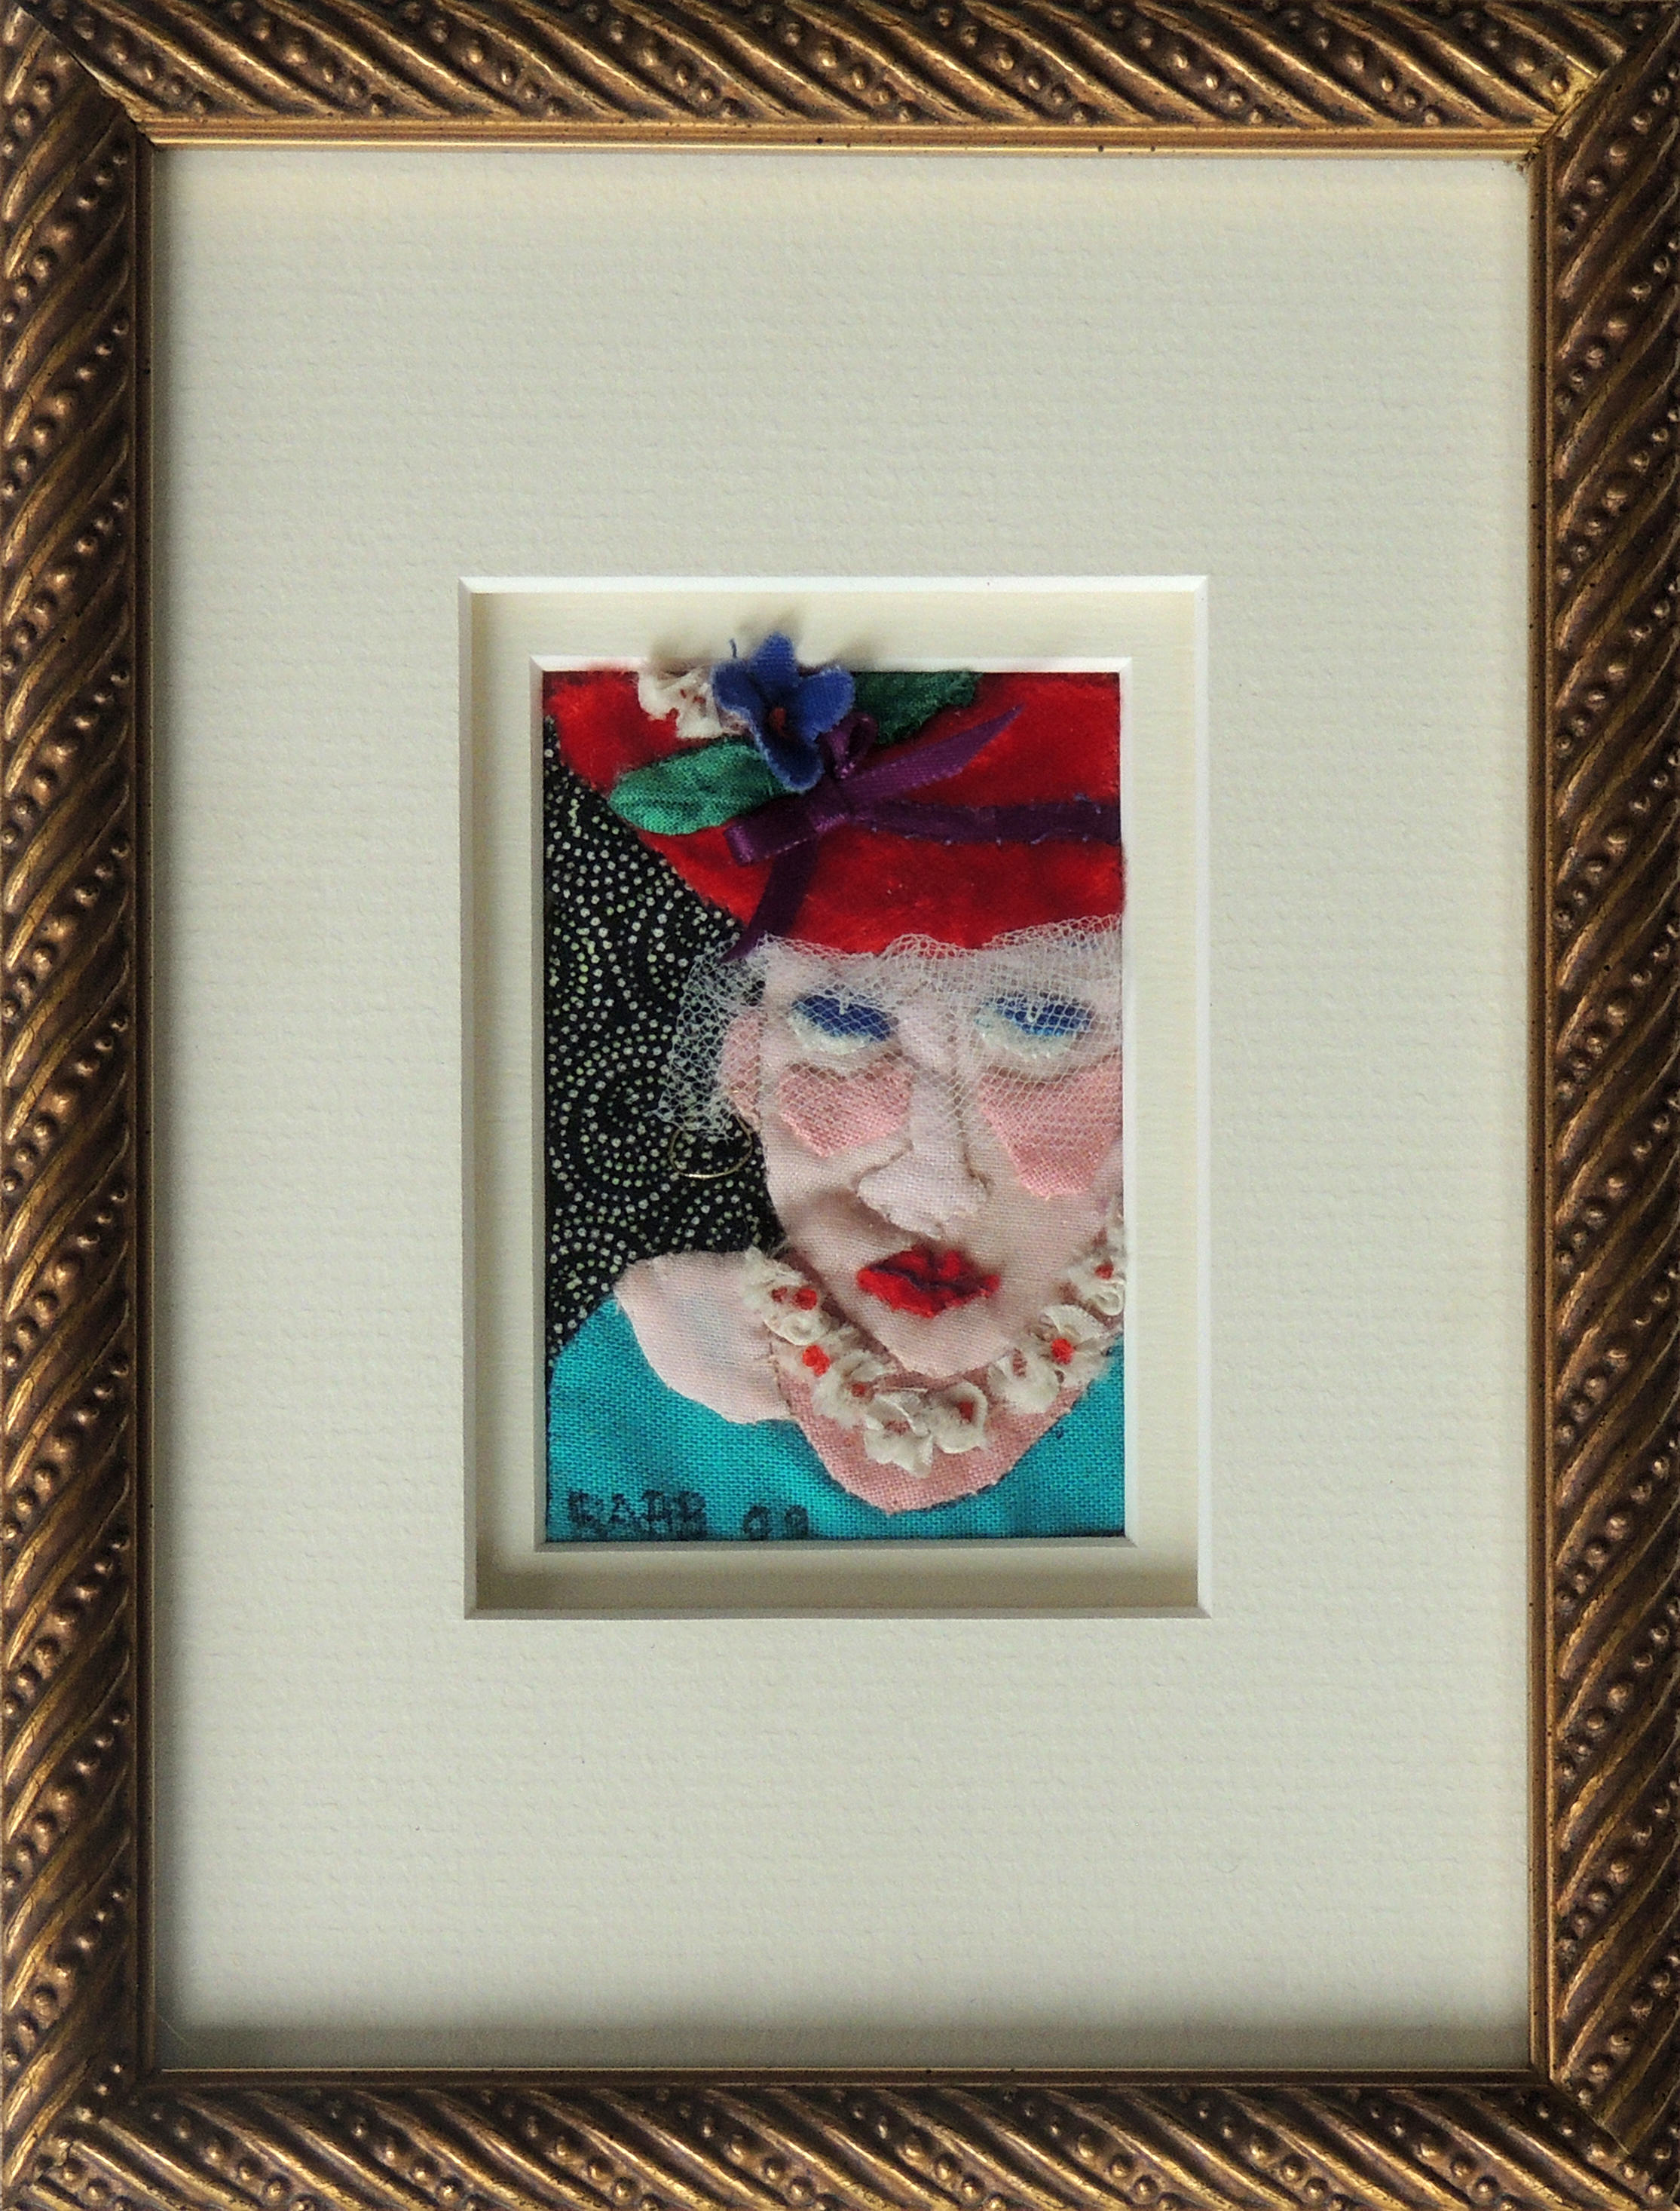 Marianne Rabb Britton | RED HAT | Fabric & Embroidery | 8 x 6"